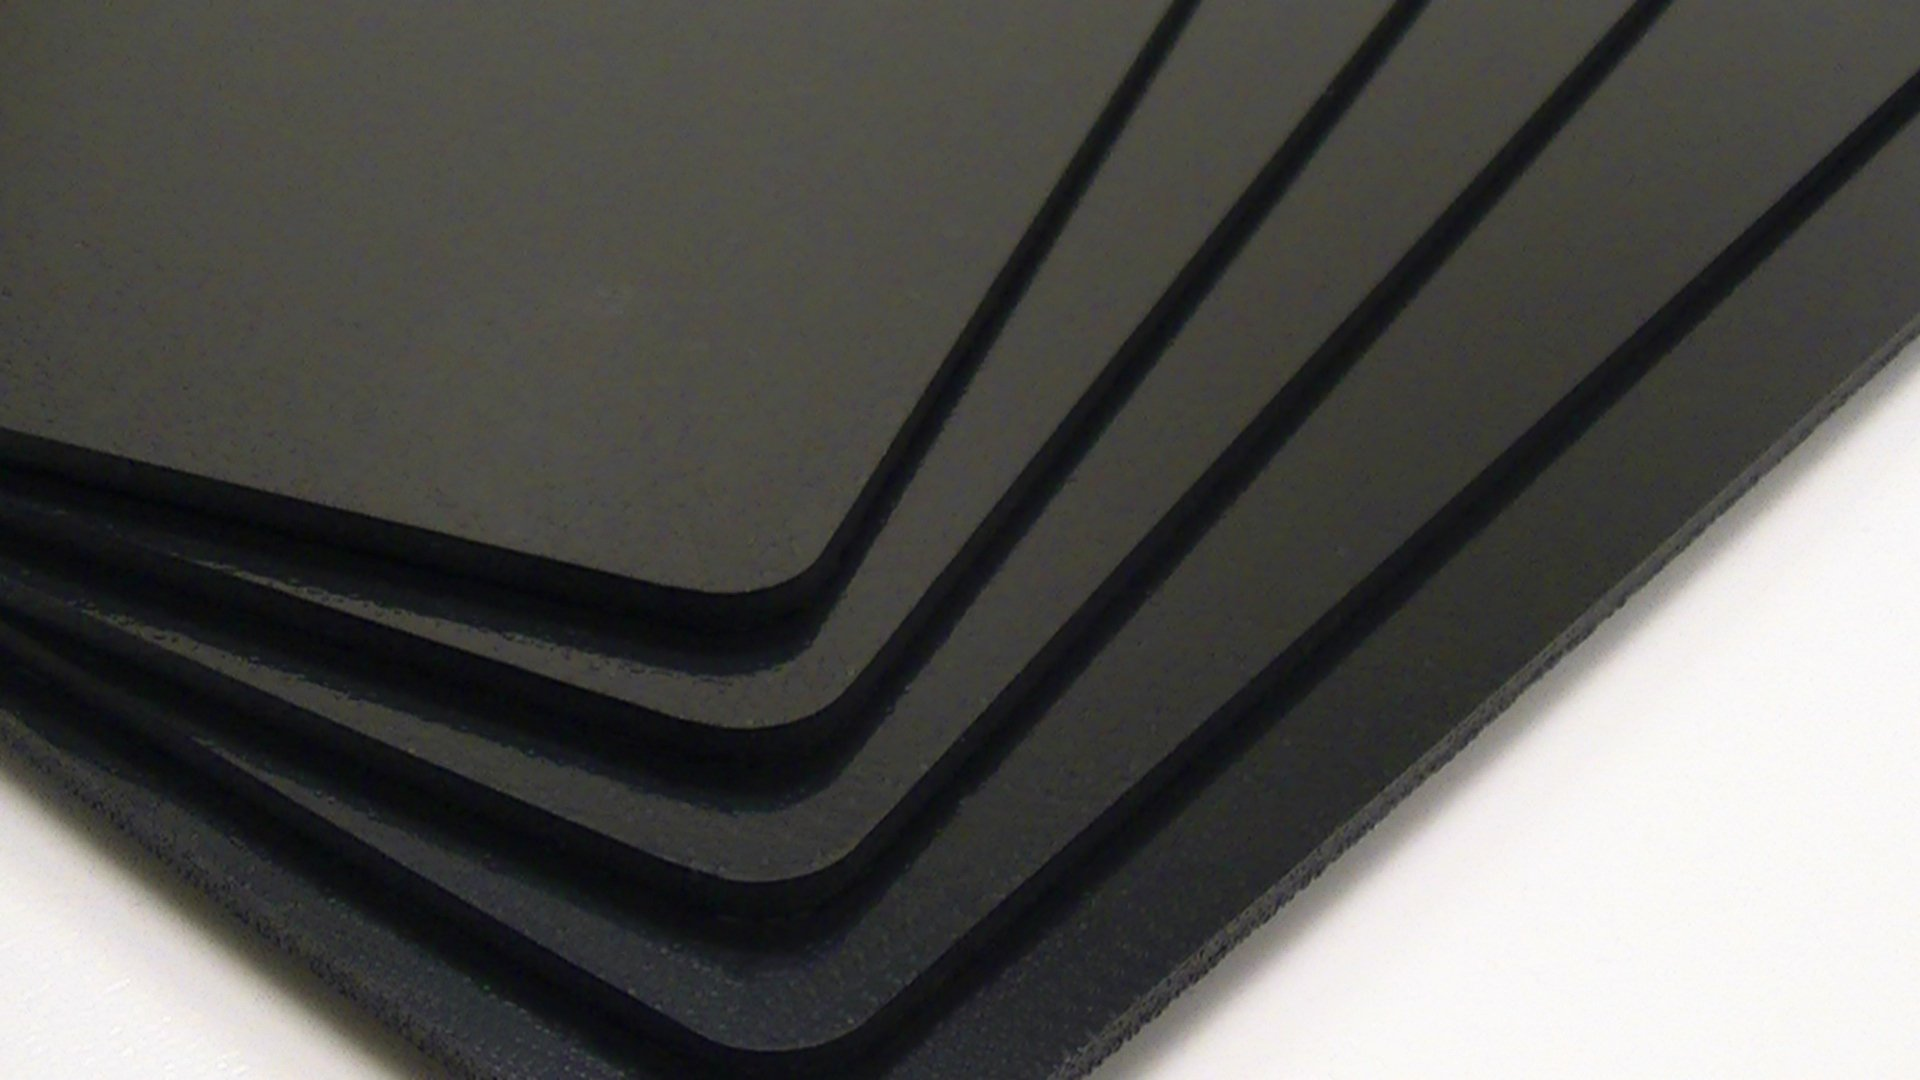 Utilaboard 2x Expansion Closed Cell Microcellular Extruded Polypropylene PP Foam Sheet 6 mm x 24 x 48 Inch Black Half the Weight of Solid HDPE Sheet High Density Polyethylene Replacement, 5/Pack by Utilaboard